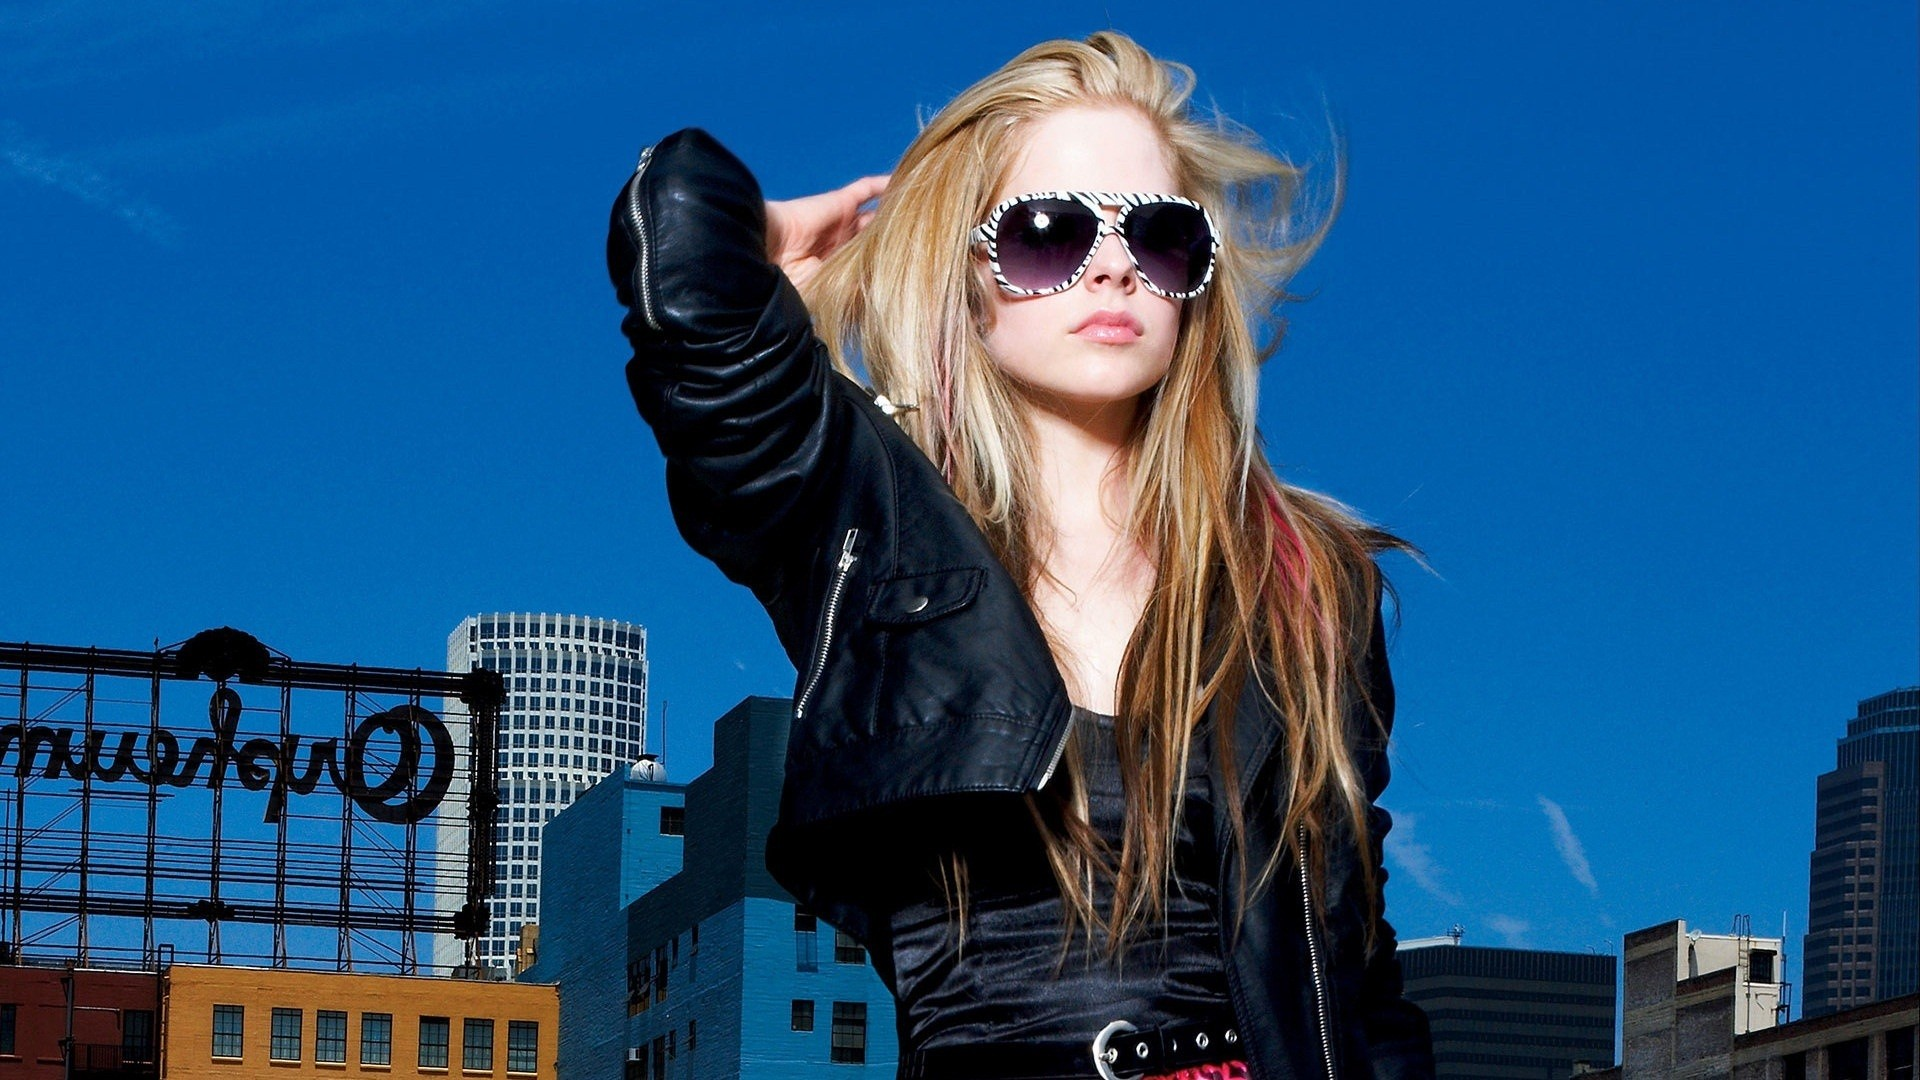 20 Hd Avril Lavigne Wallpapers